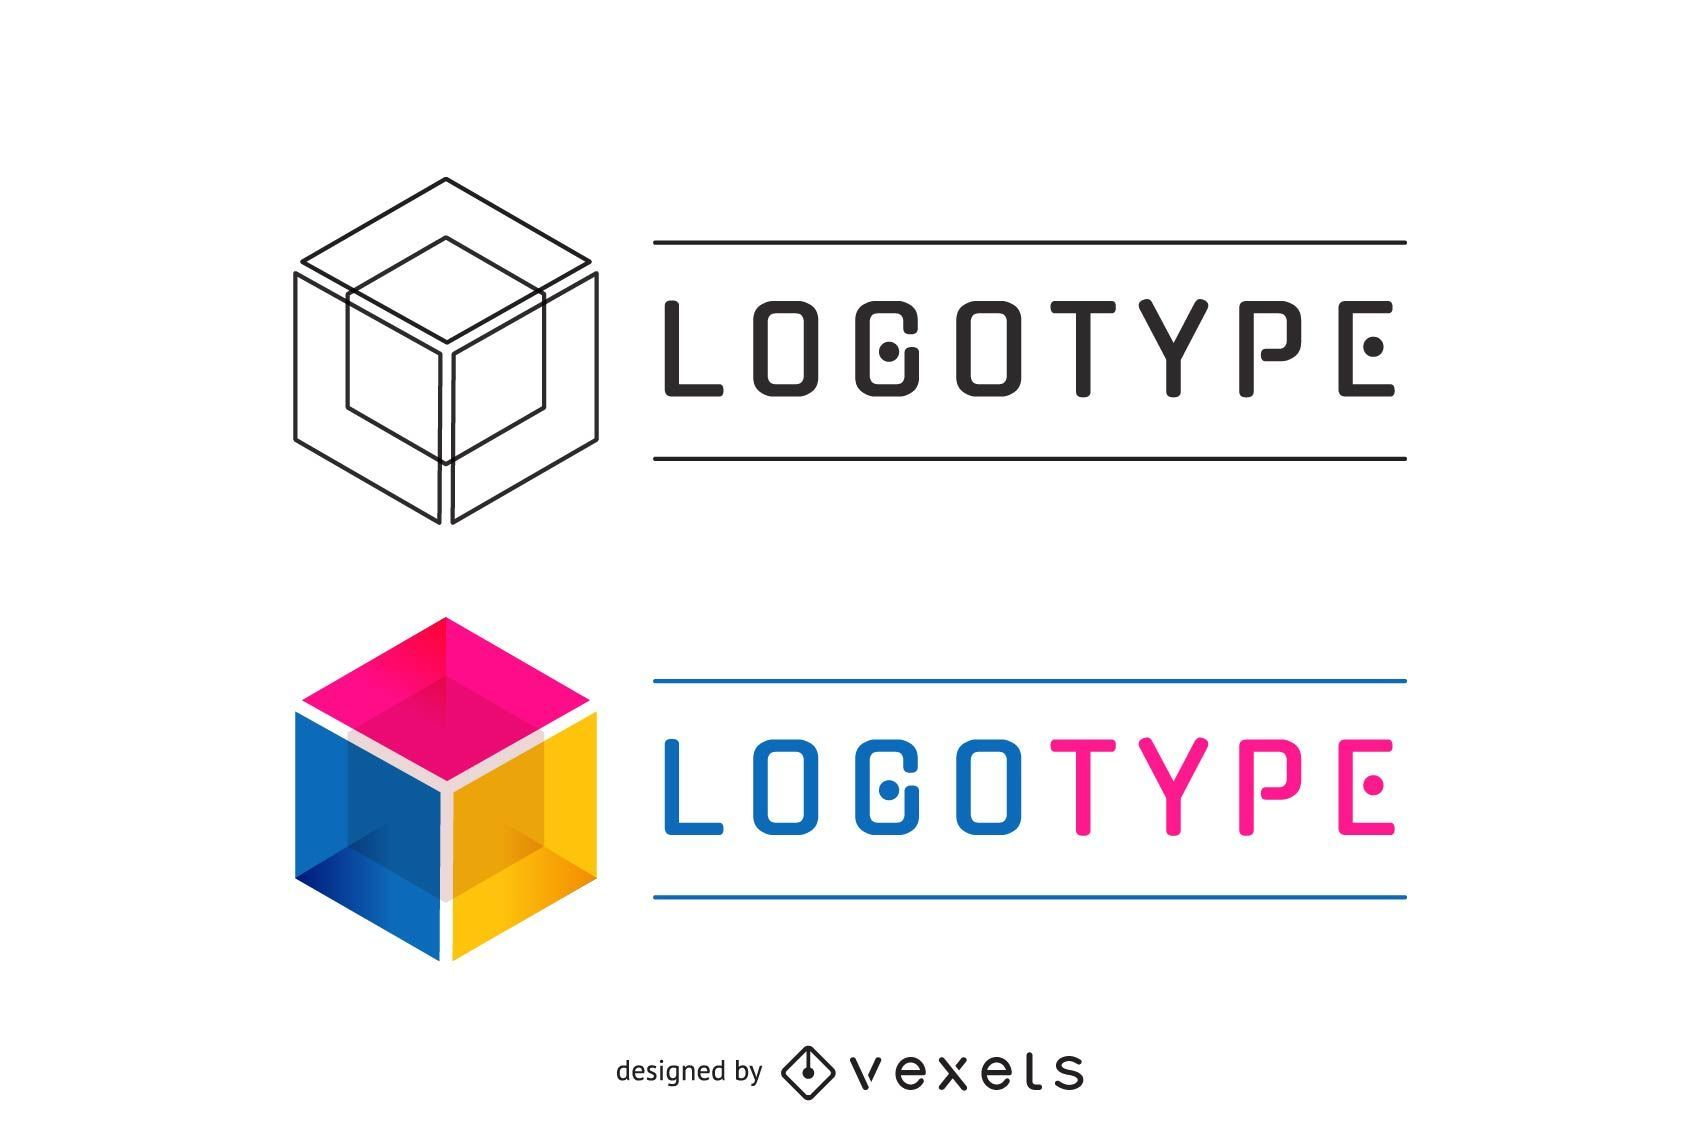 Business logotype in multiple colors